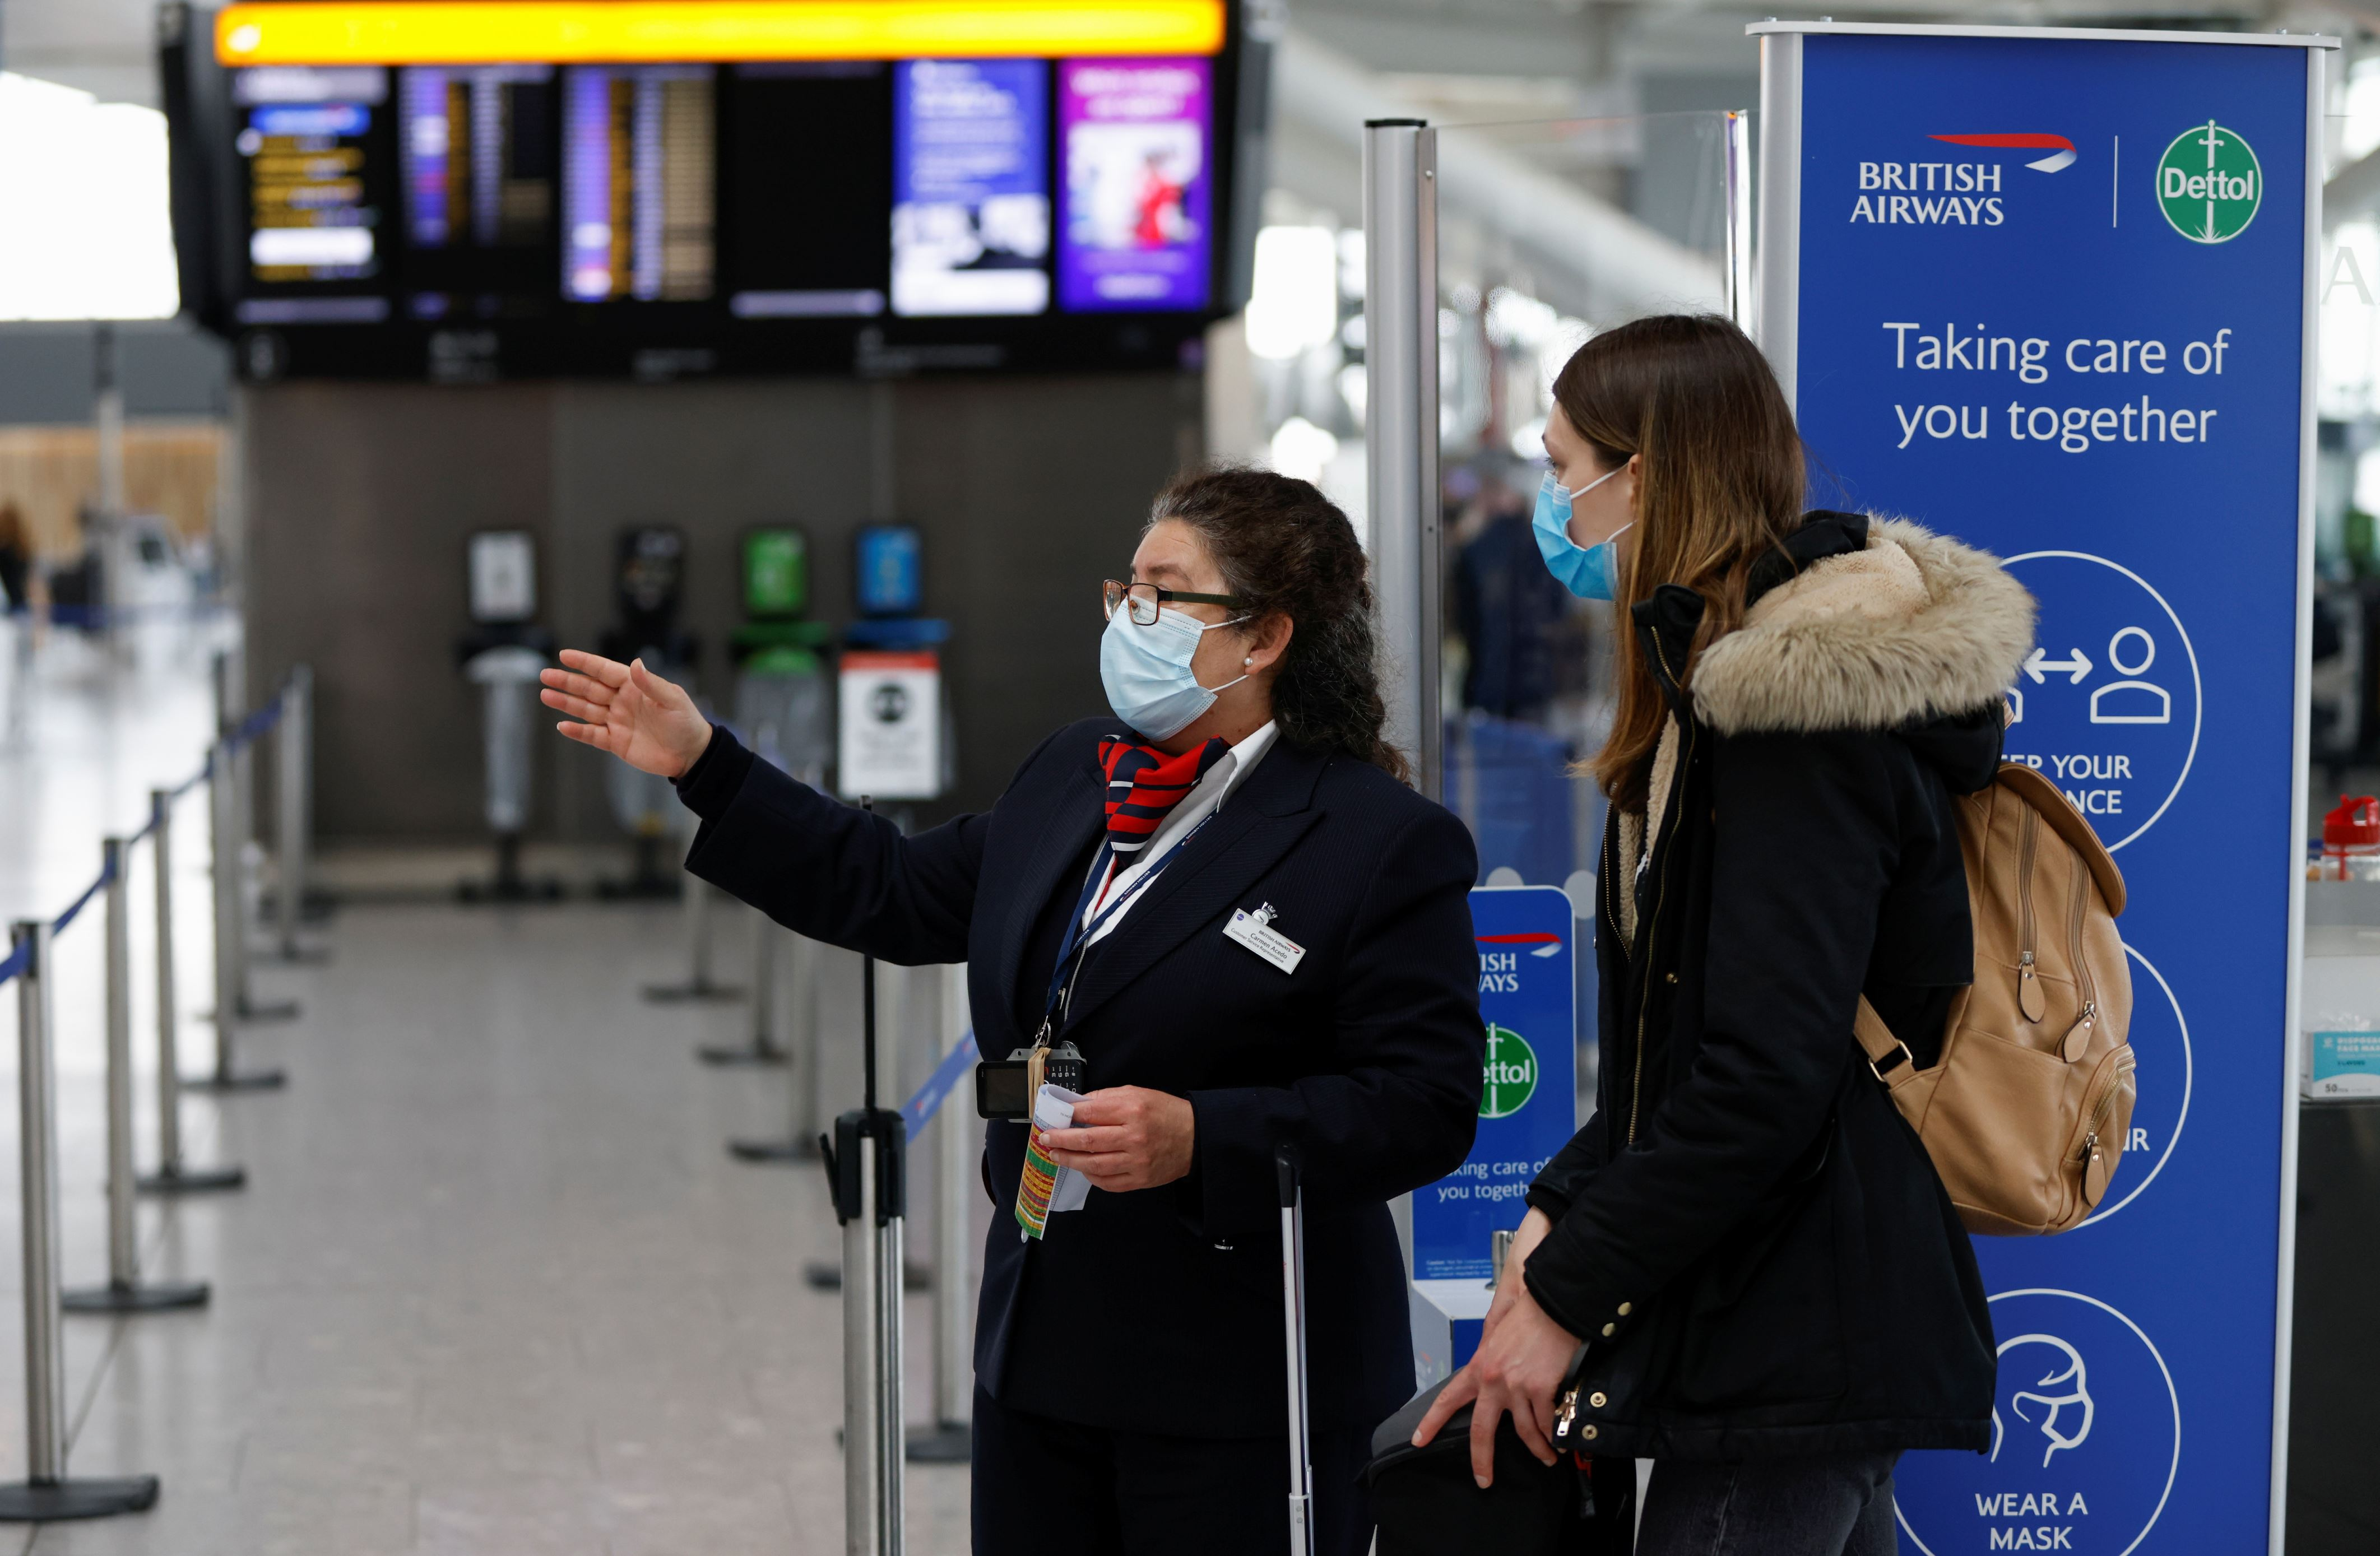 UK Covid travel rules could change at short notice, warns minister